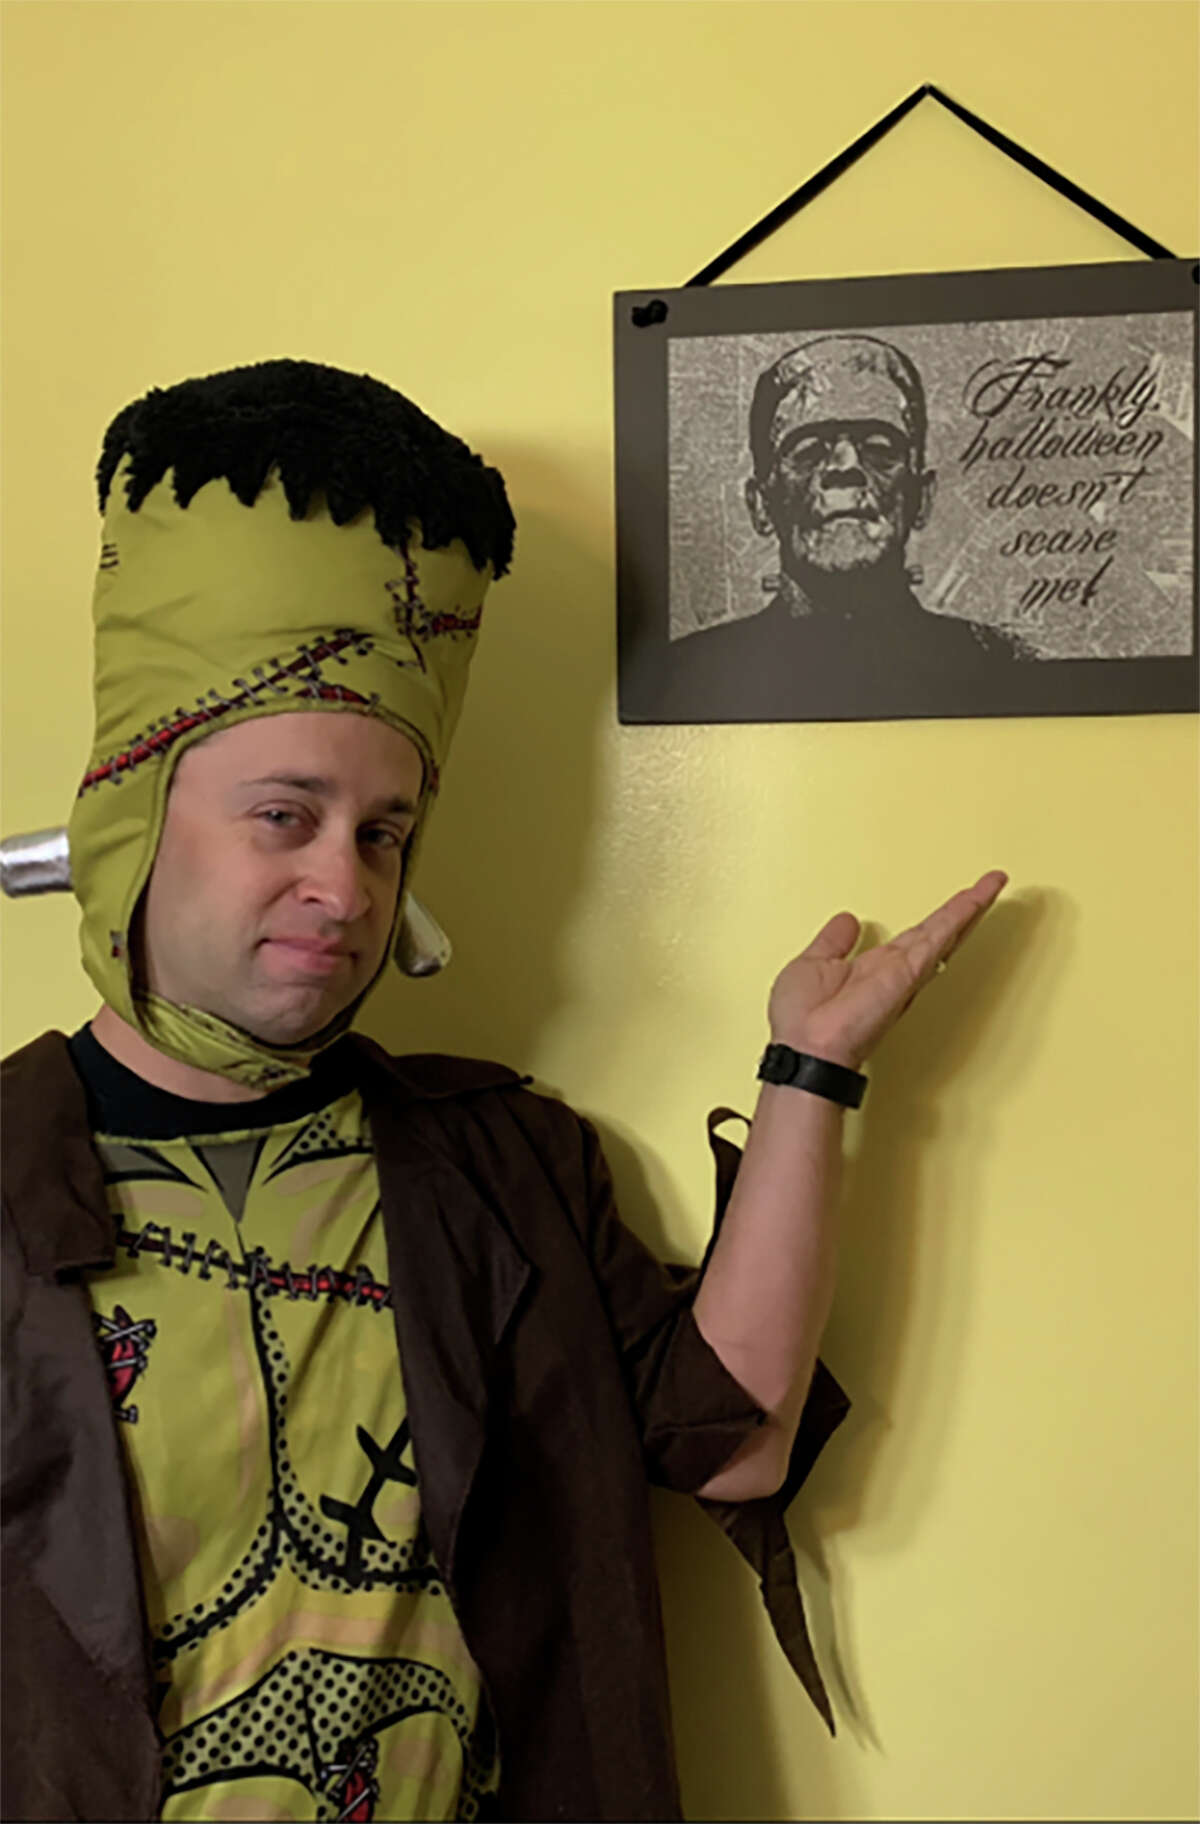 Jeff Frankenstein shows off his Frankenstein costume and his decorative Frankenstein sign at his Pennsylvania home.